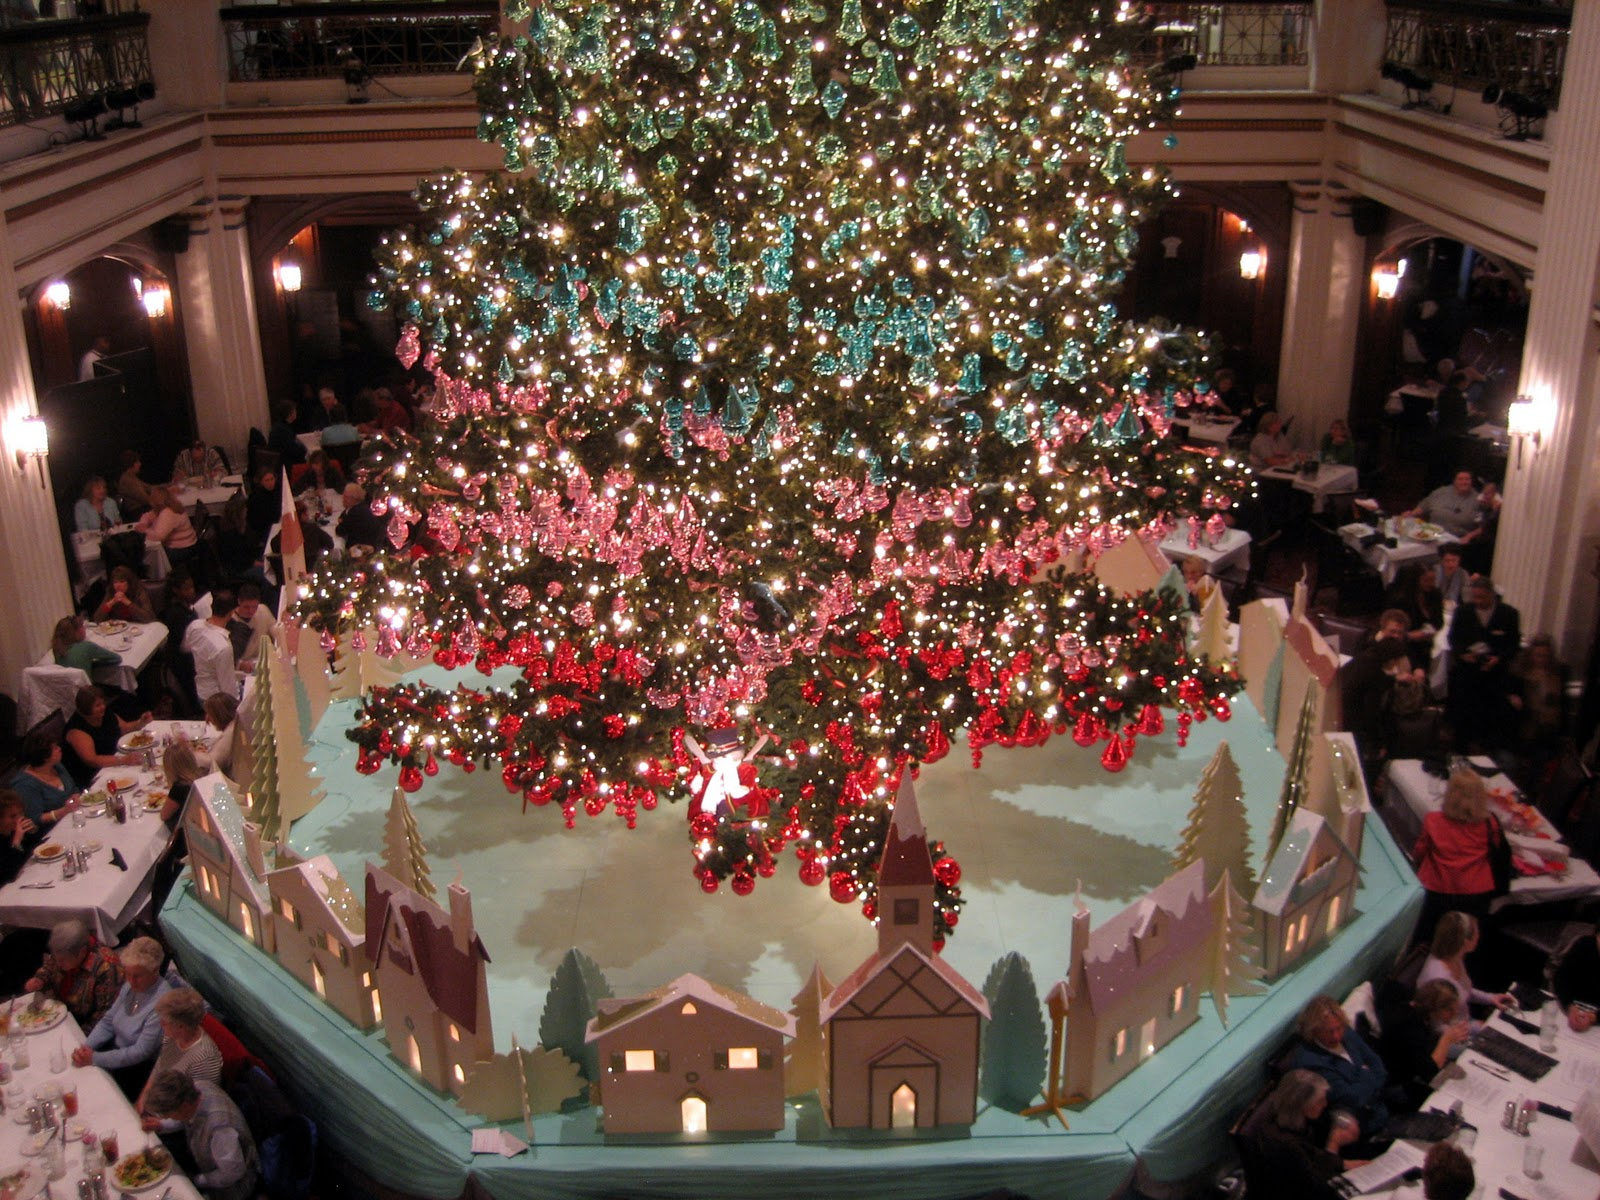 Christmas Has Come To Chicago! I Wish I Could Have Been There To See The  104th Tree Lighting Ceremony That Kicks Off The Holiday Season On State  Street In ...